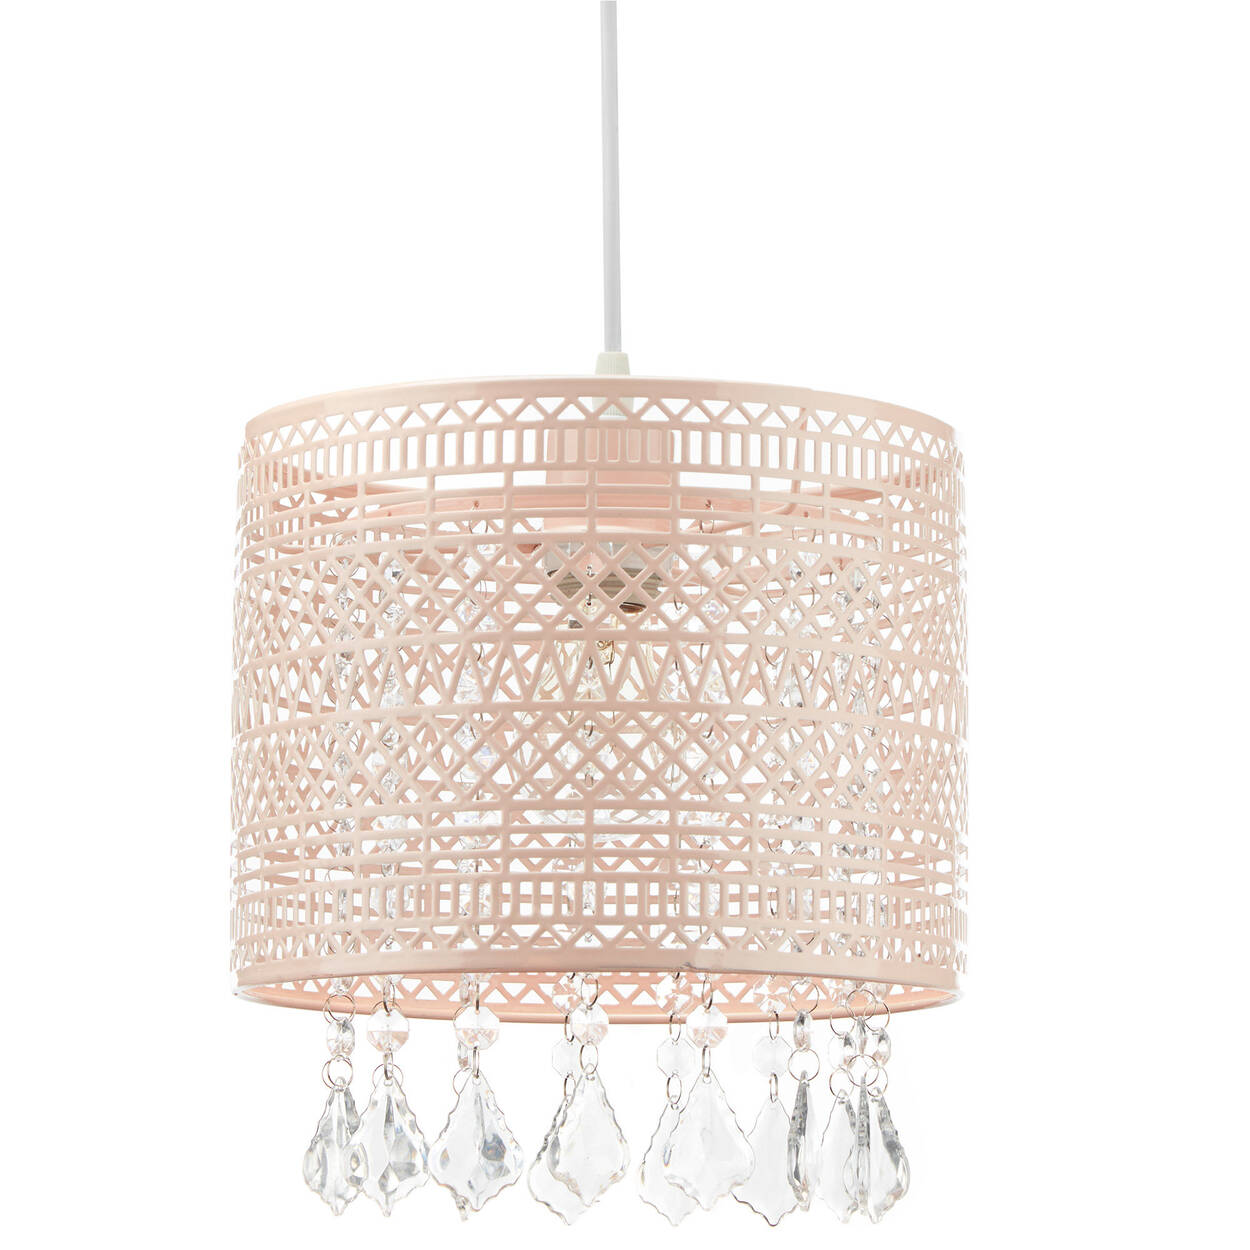 Cut-Out Ceiling Lamp with Decorative Droplets